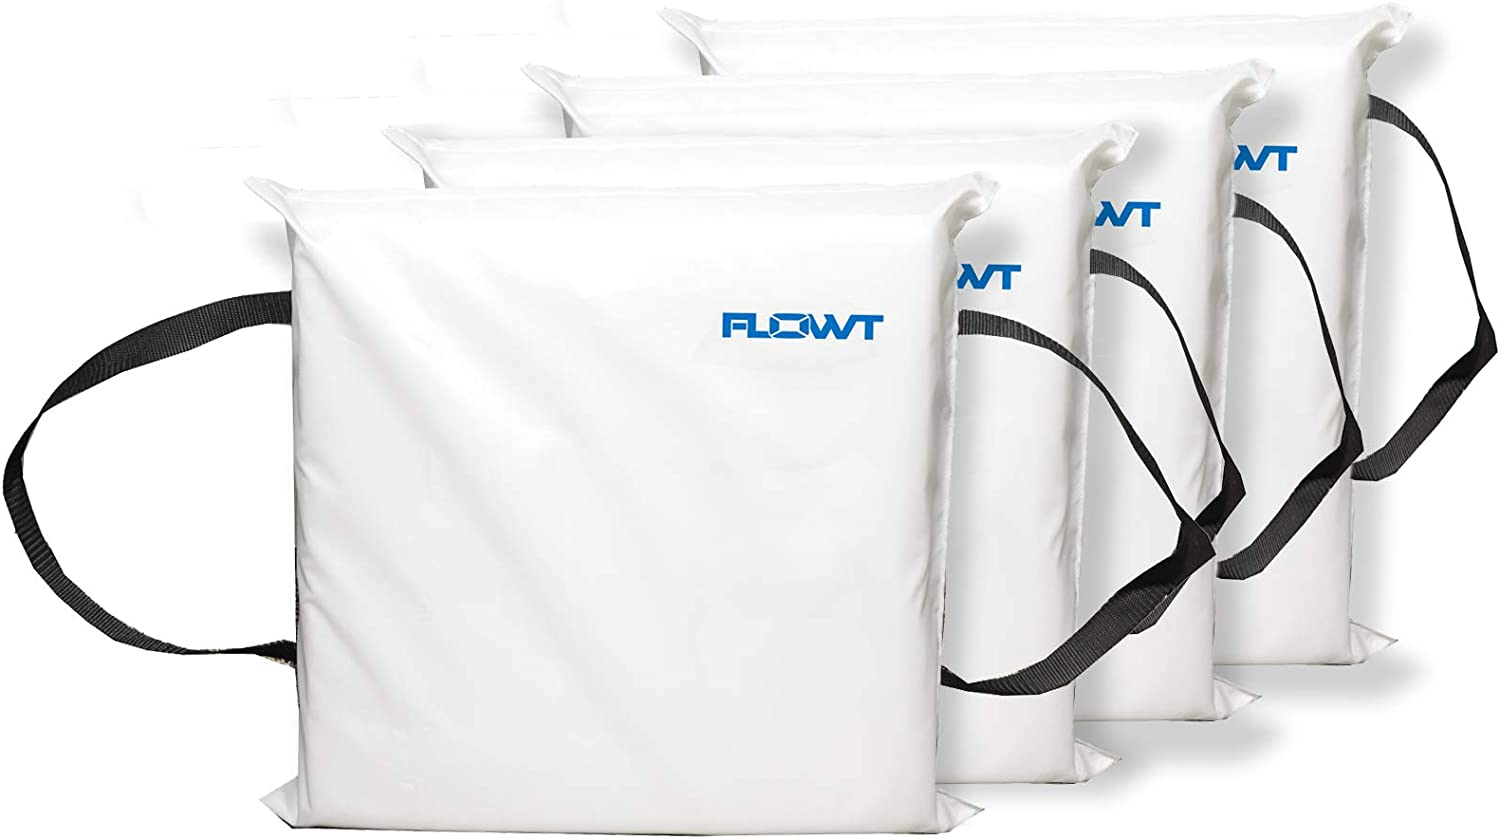 4//pk FLOWT Boat Cushions Type IV USCG Approved